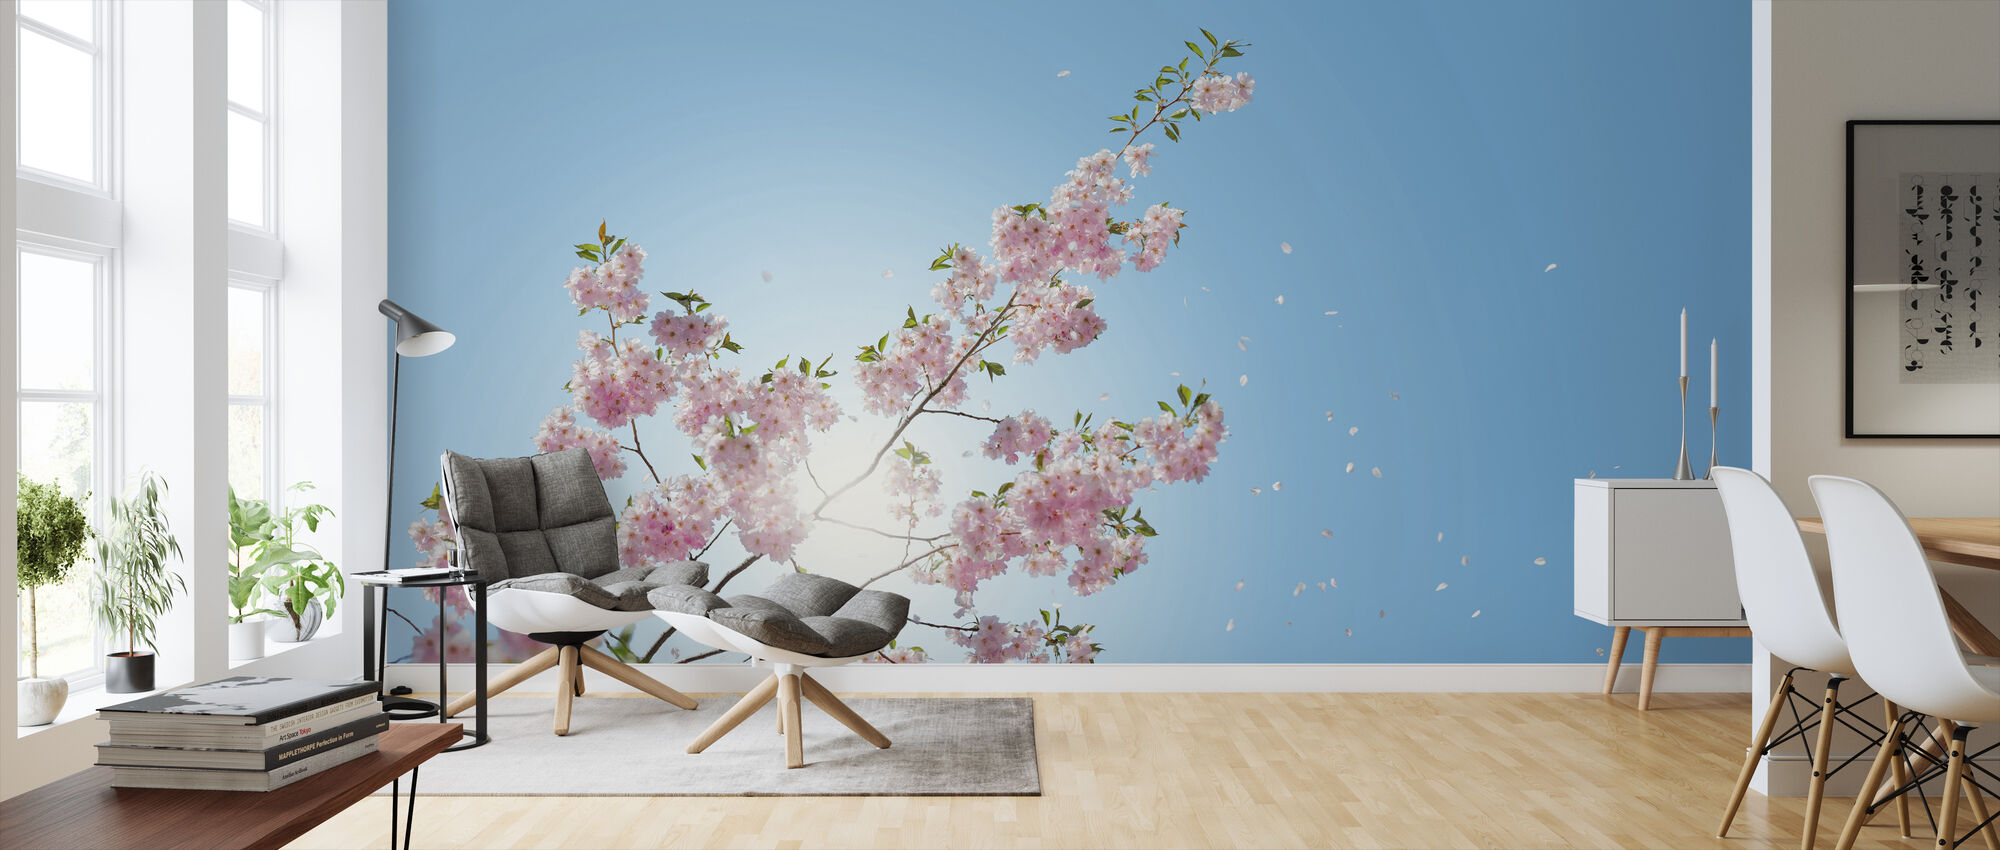 Falling Petals - Wallpaper - Living Room